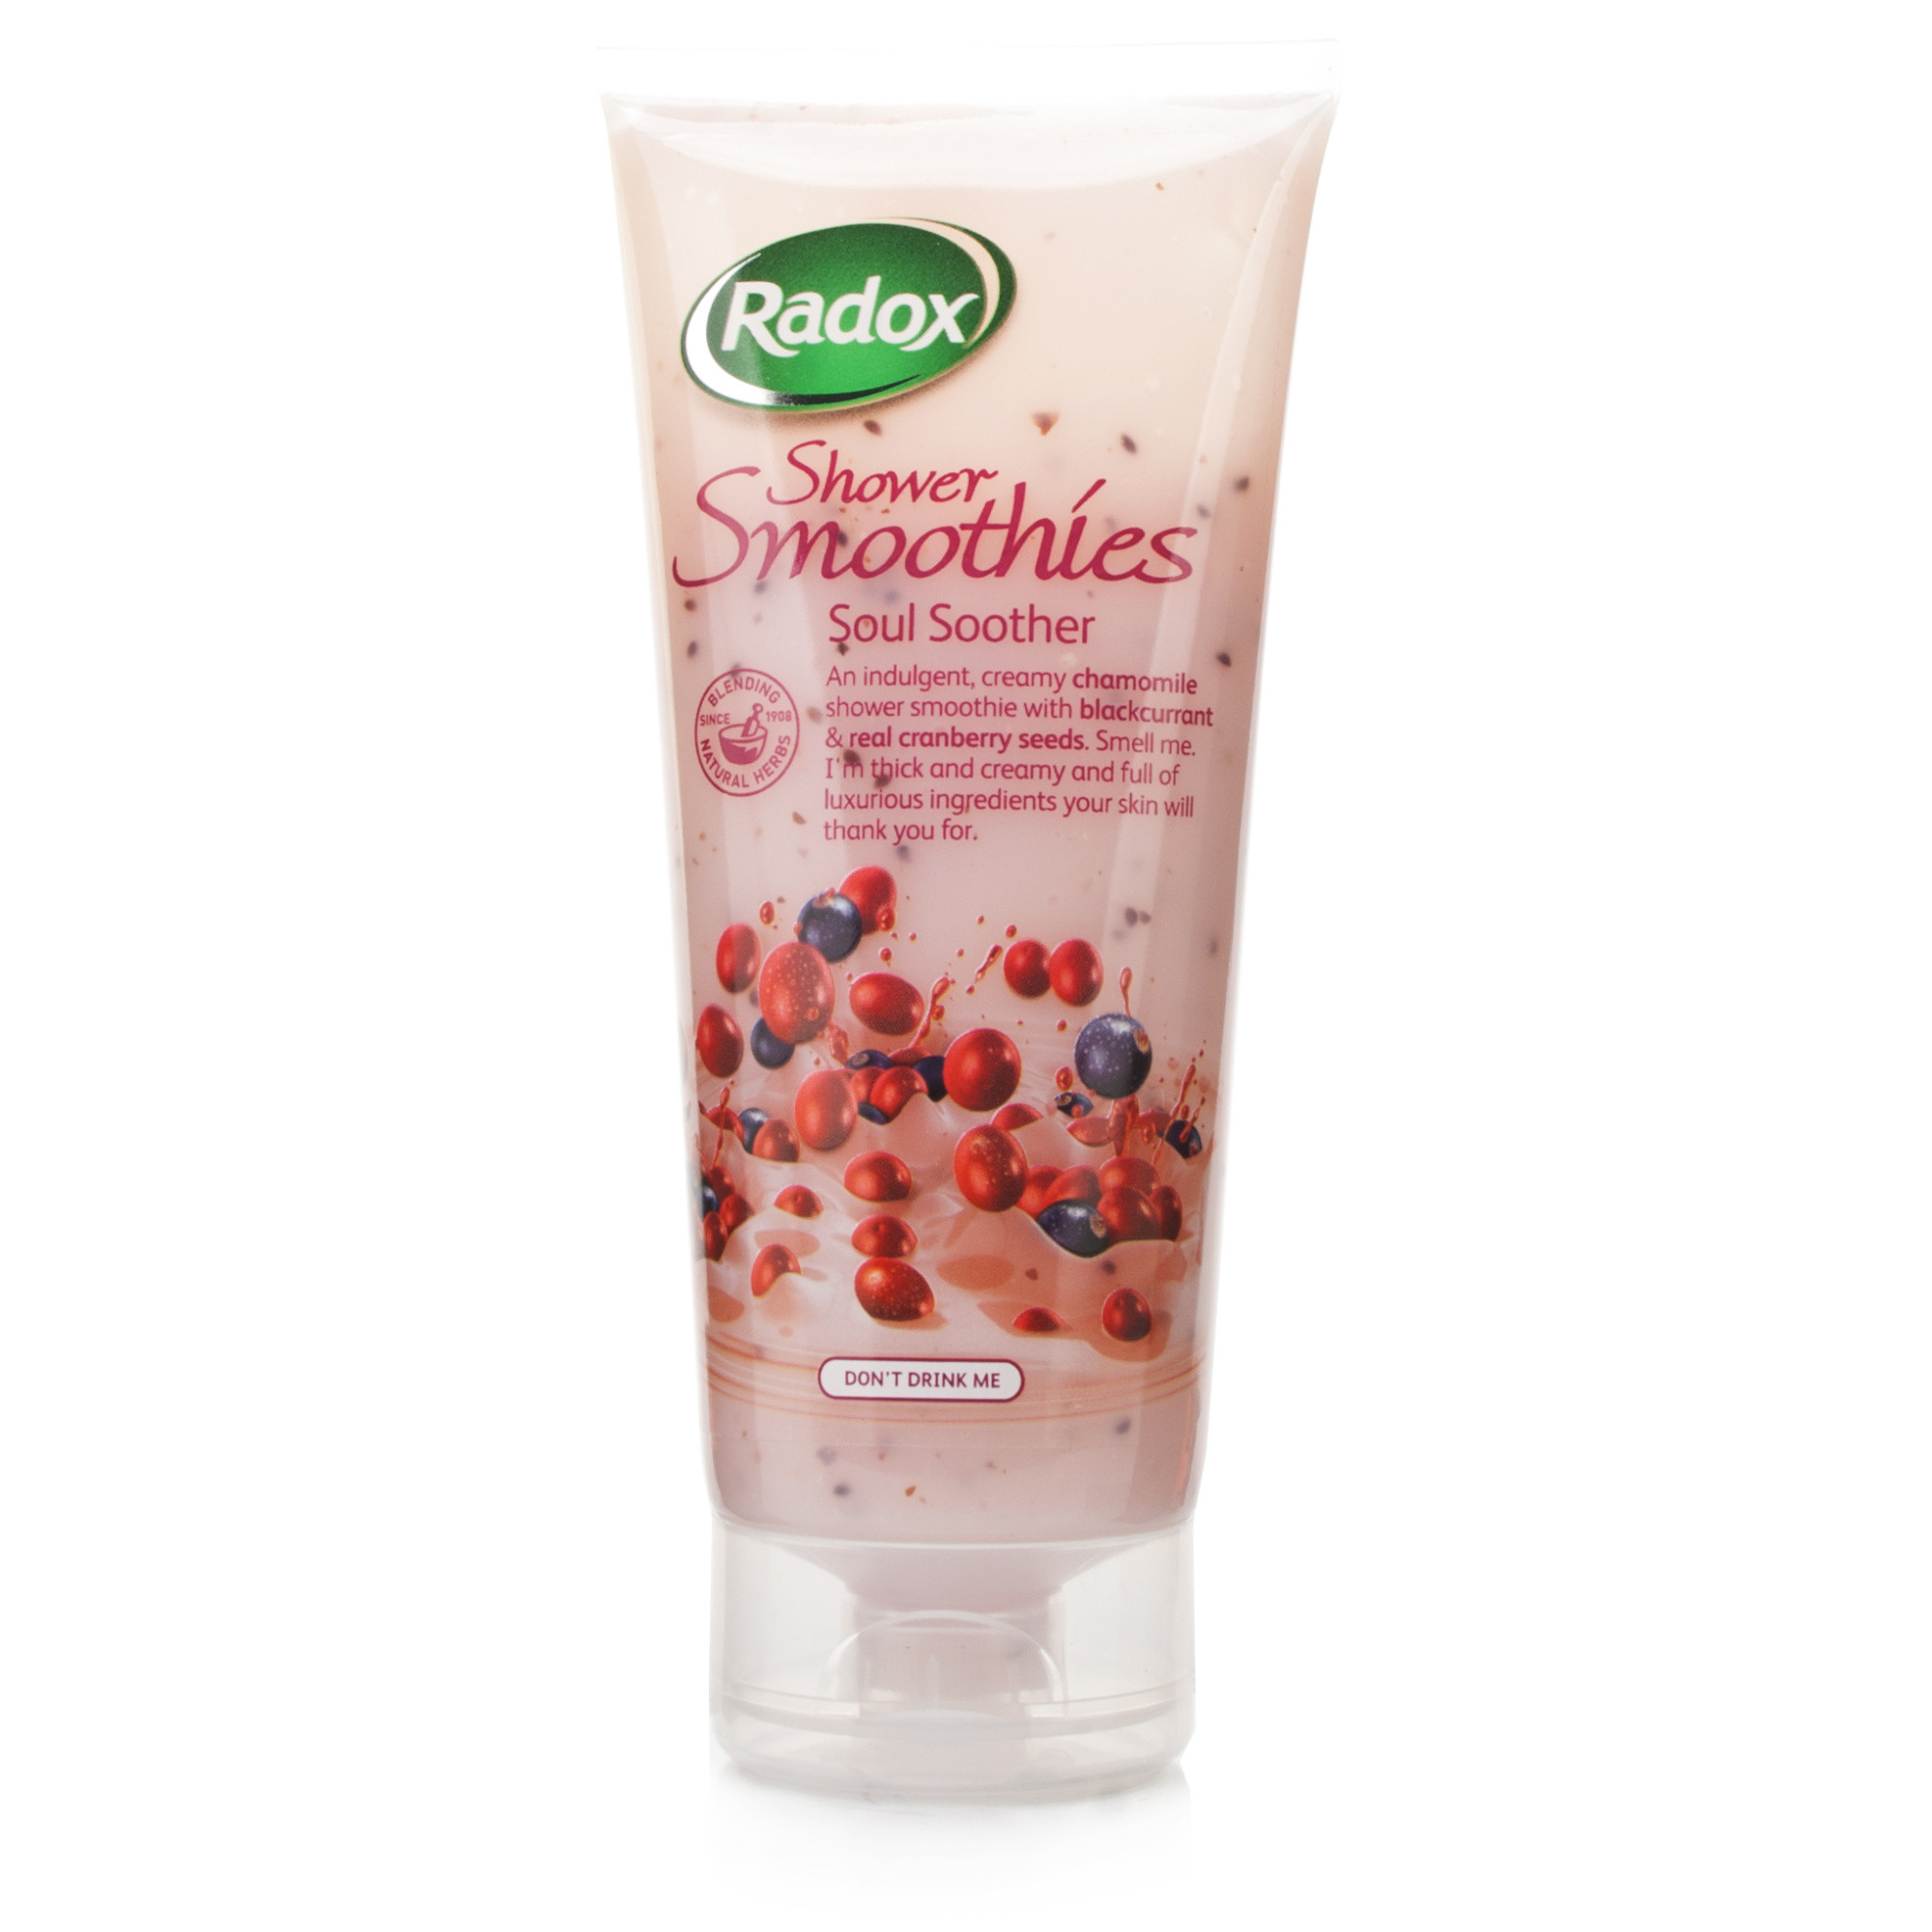 Radox Shower Smoothies Soul Soother